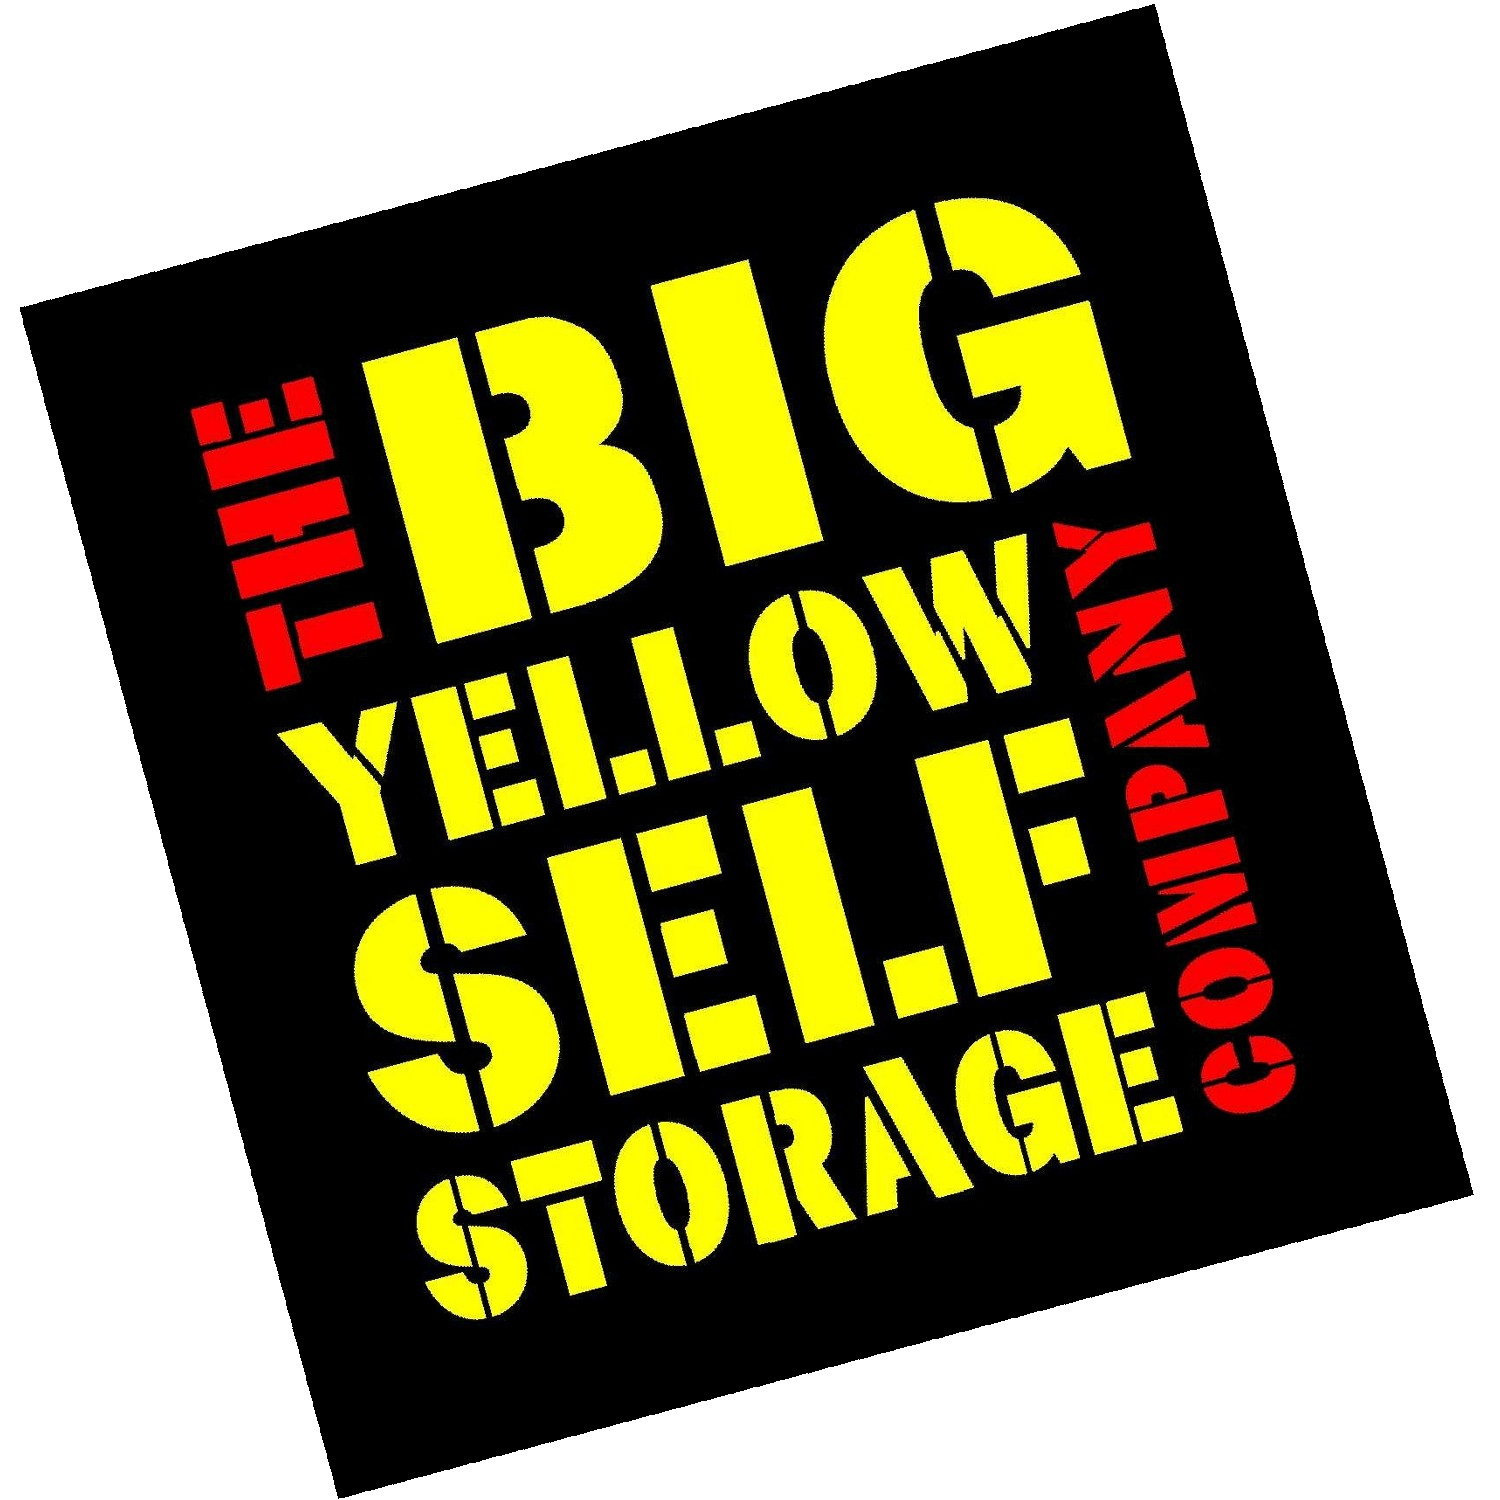 Big Yellow Self Storage - storage for homes and businesses